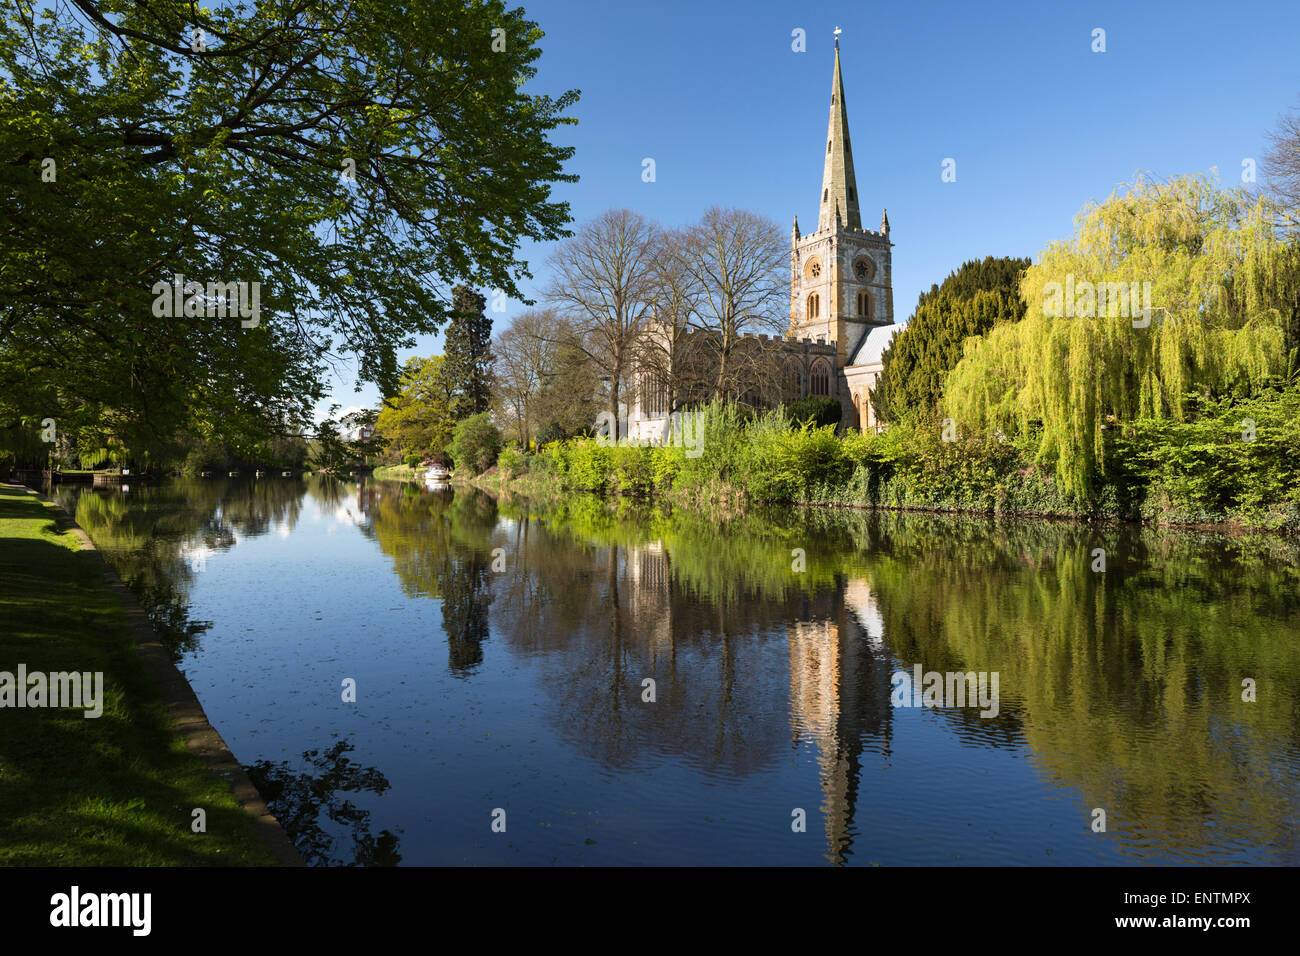 Holy Trinity Church (Shakespeare's burial place) on the River Avon, Stratford-upon-Avon, Warwickshire, England, - Stock Image